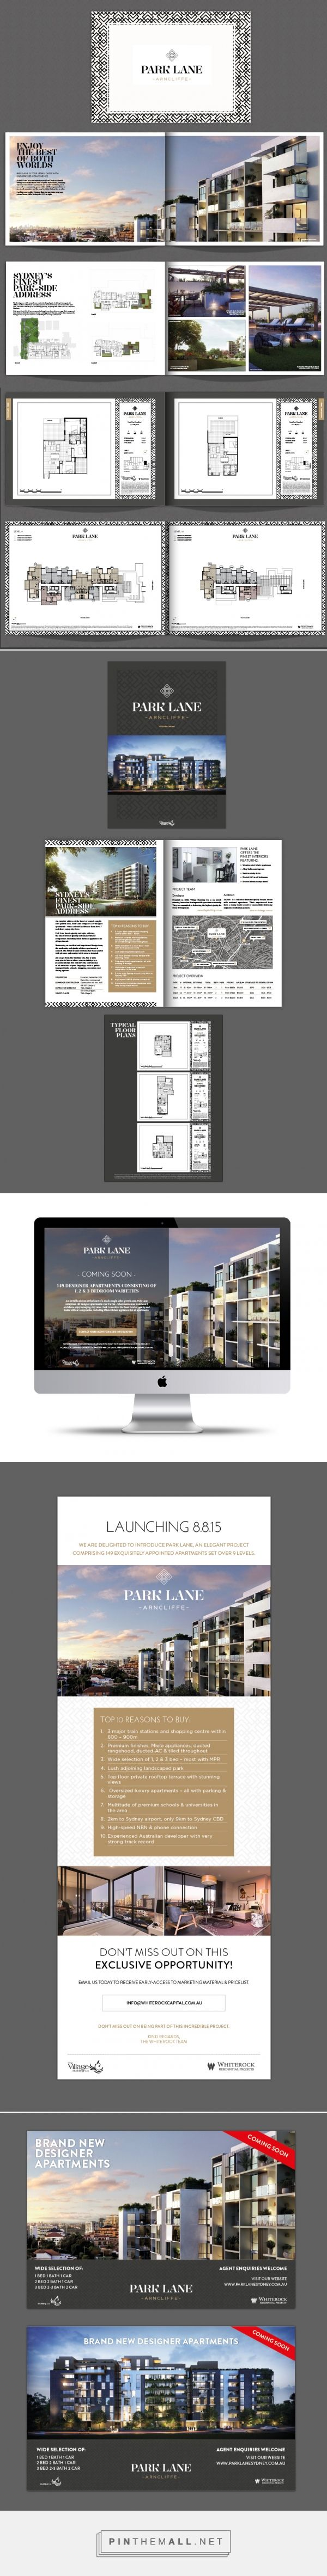 Park Lane - Property Branding on Behance - created via http://pinthemall.net